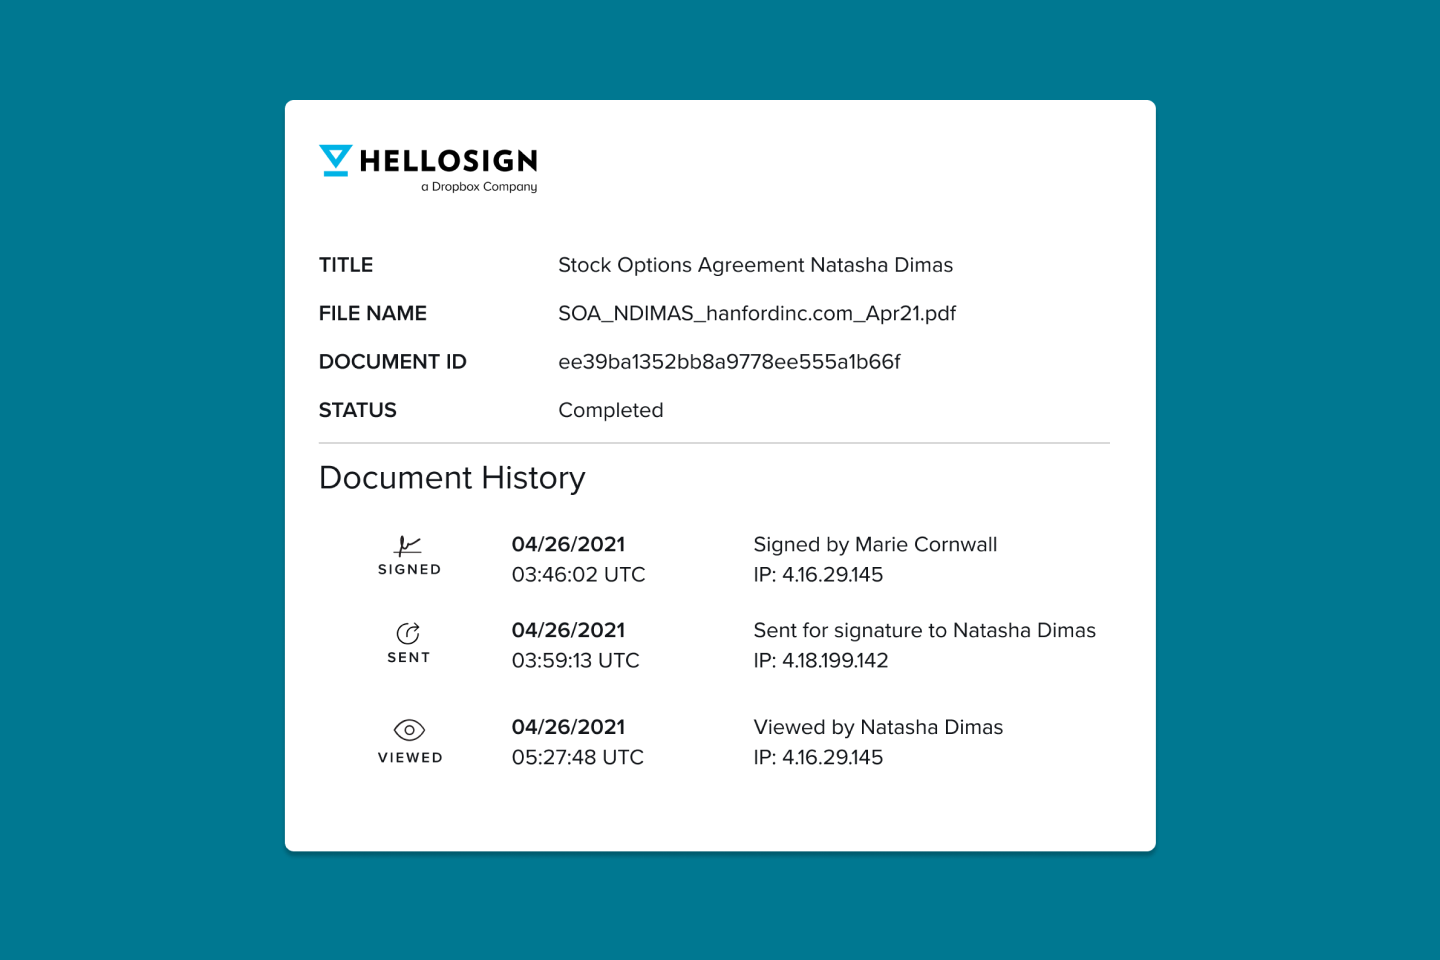 HelloSign audit trail